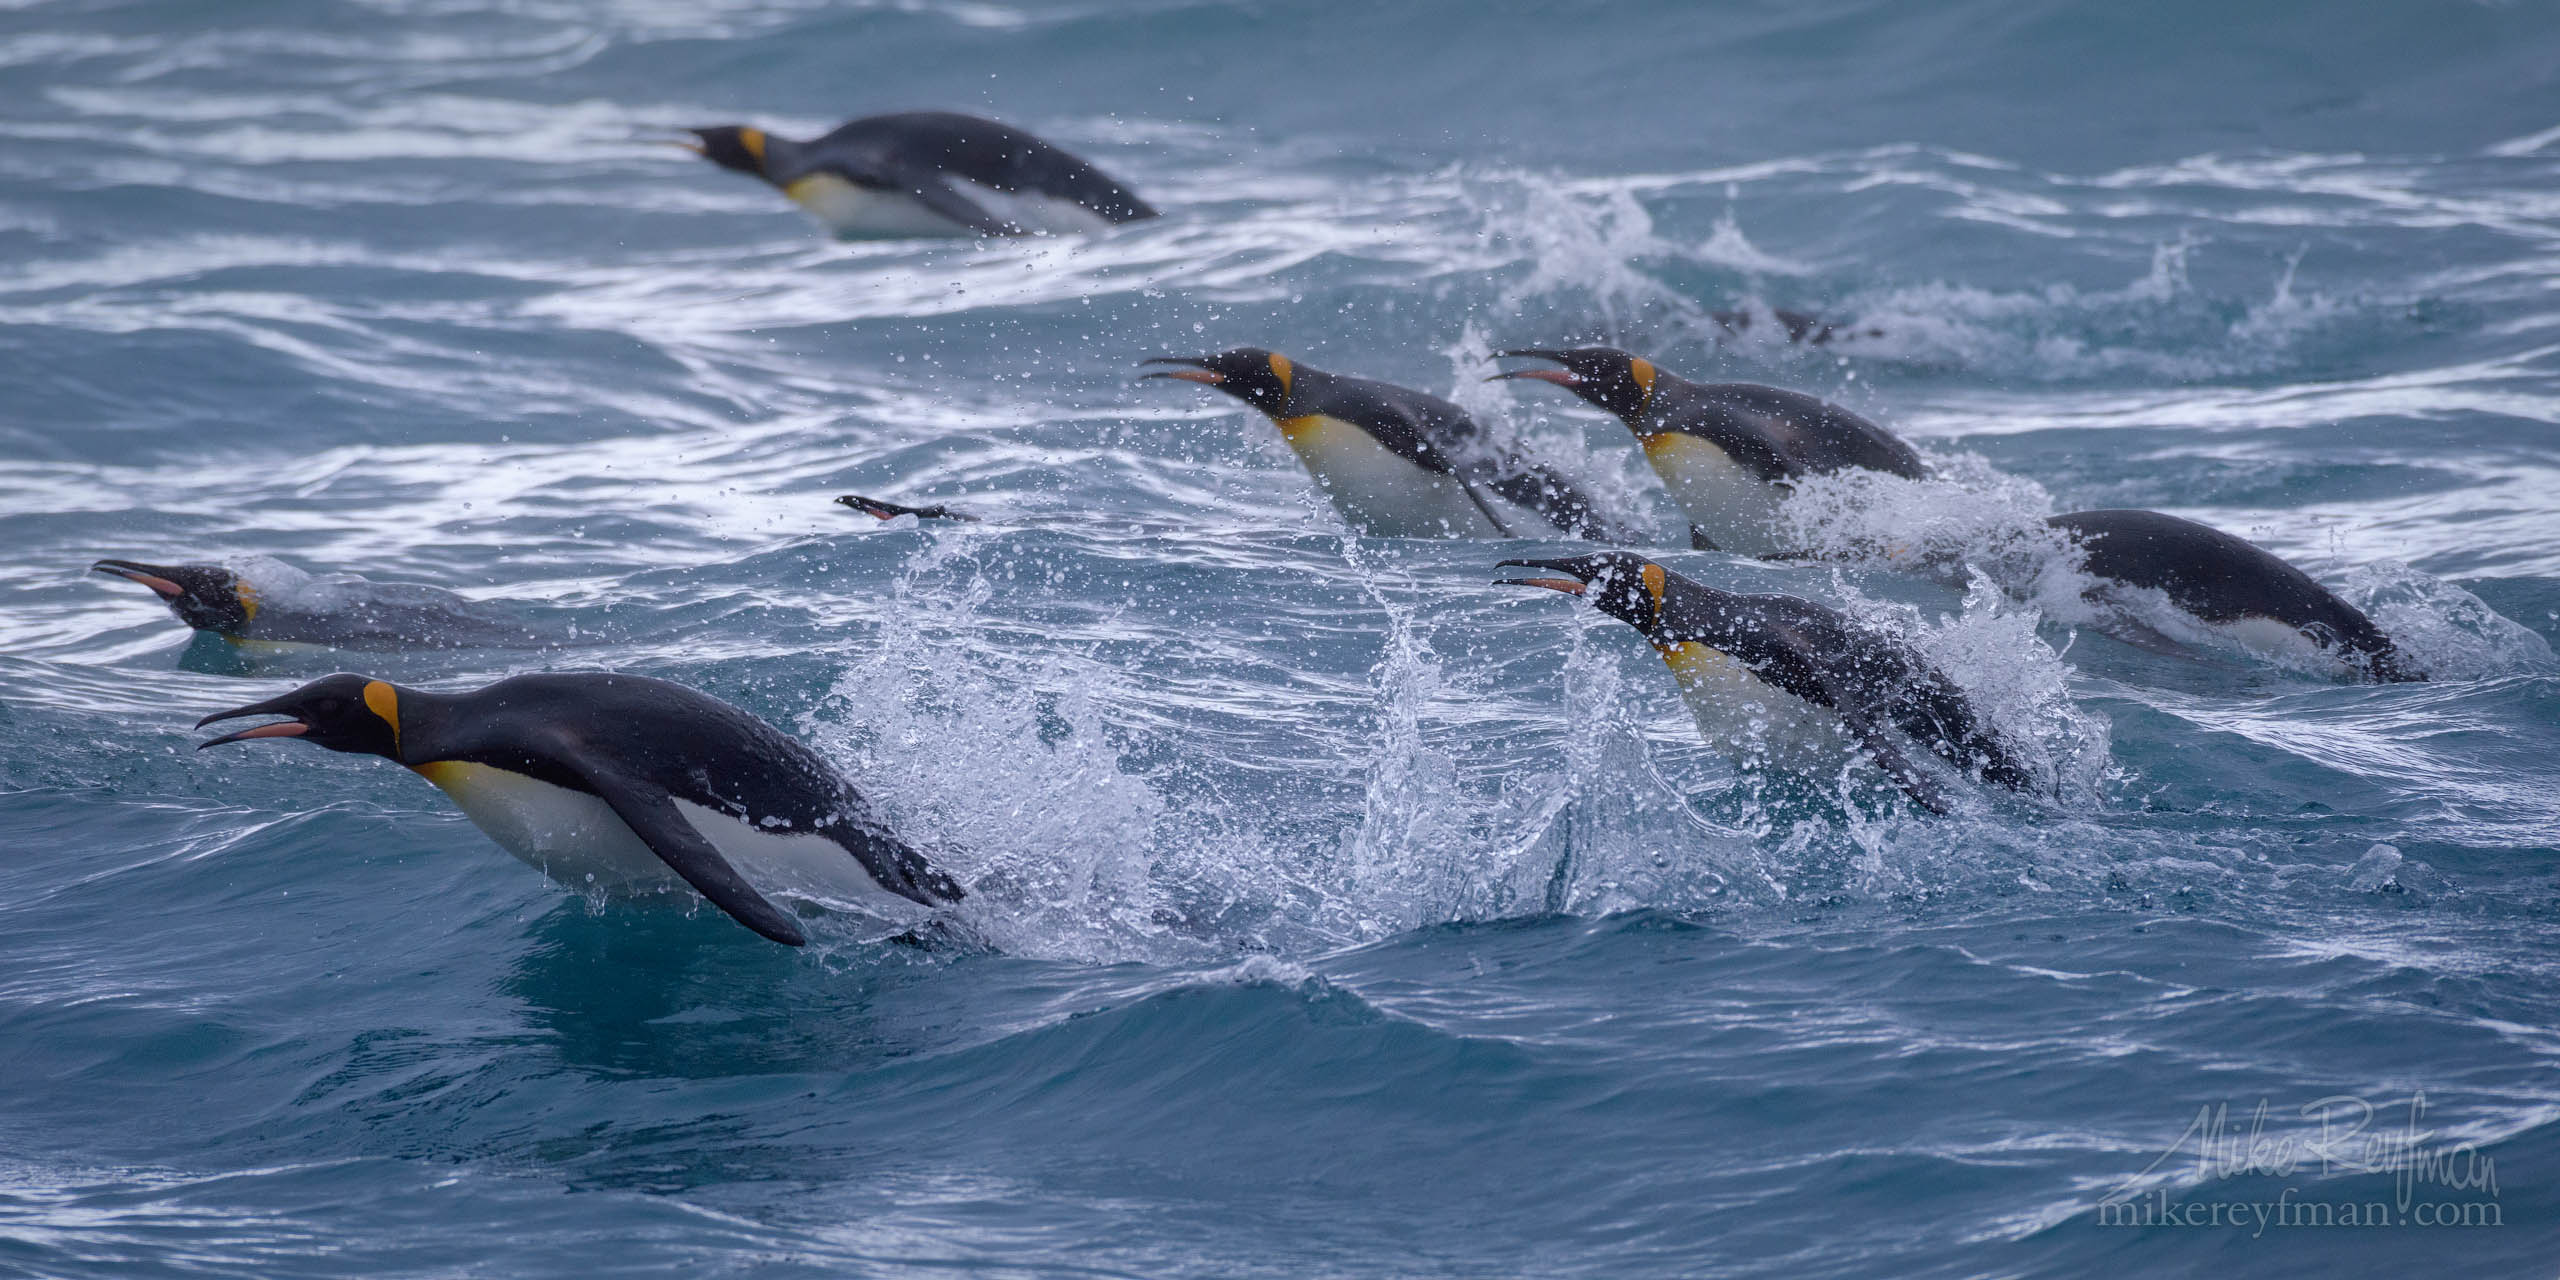 King Penguin foraging at sea near South Georgia Island, South Atlantic P12-MRD1D5313 - Selected panoramic images with 2:1 aspect ratio - Mike Reyfman Photography